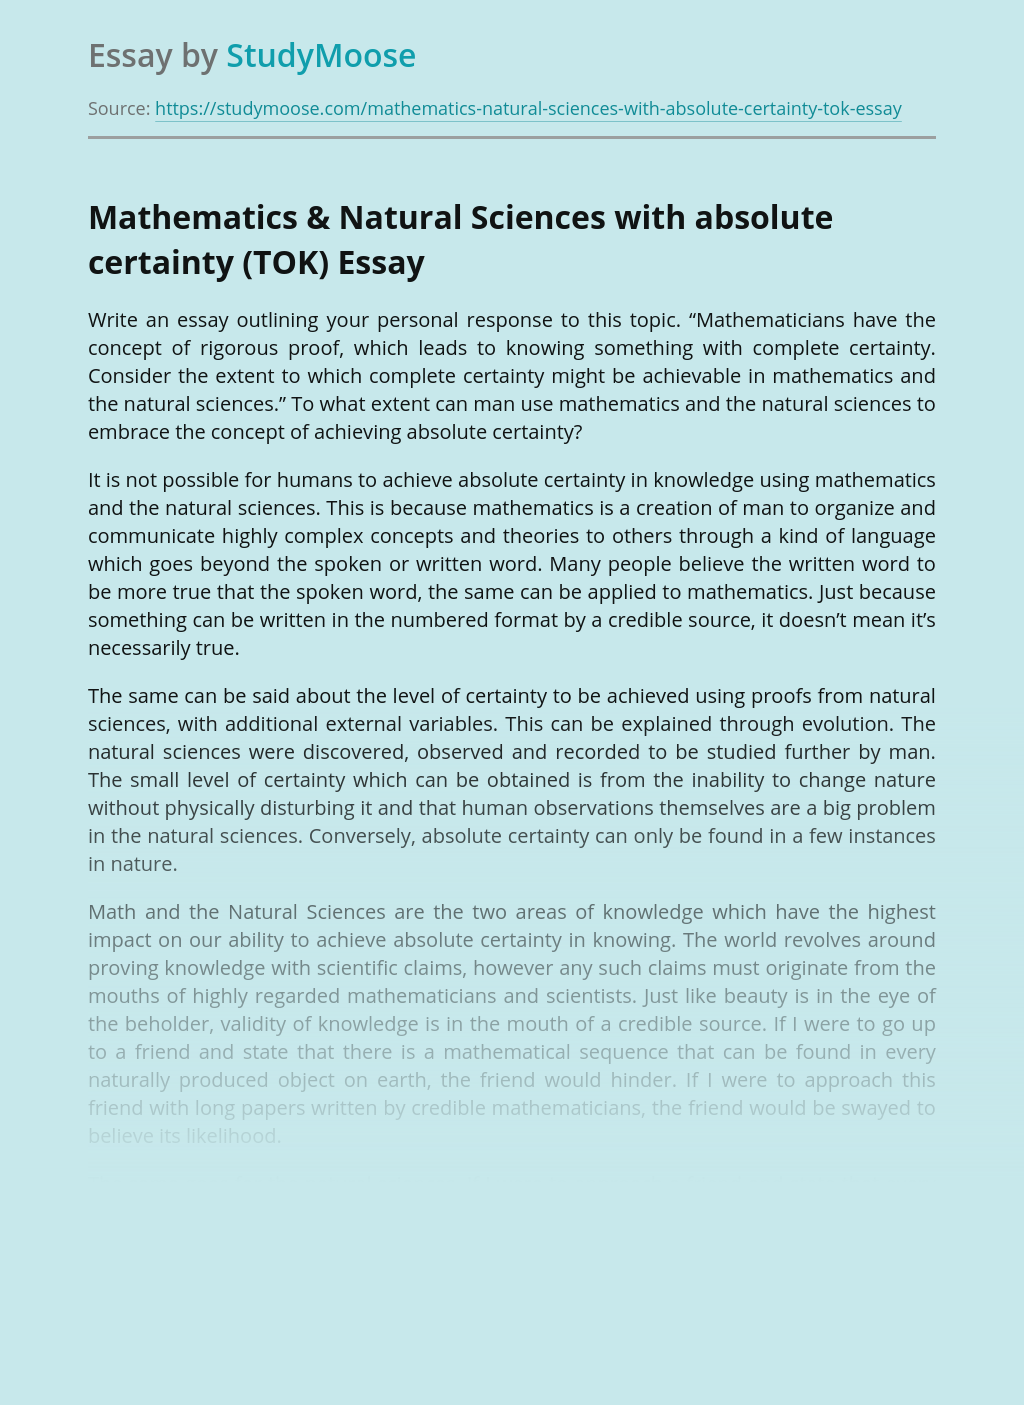 Mathematics & Natural Sciences with absolute certainty (TOK)